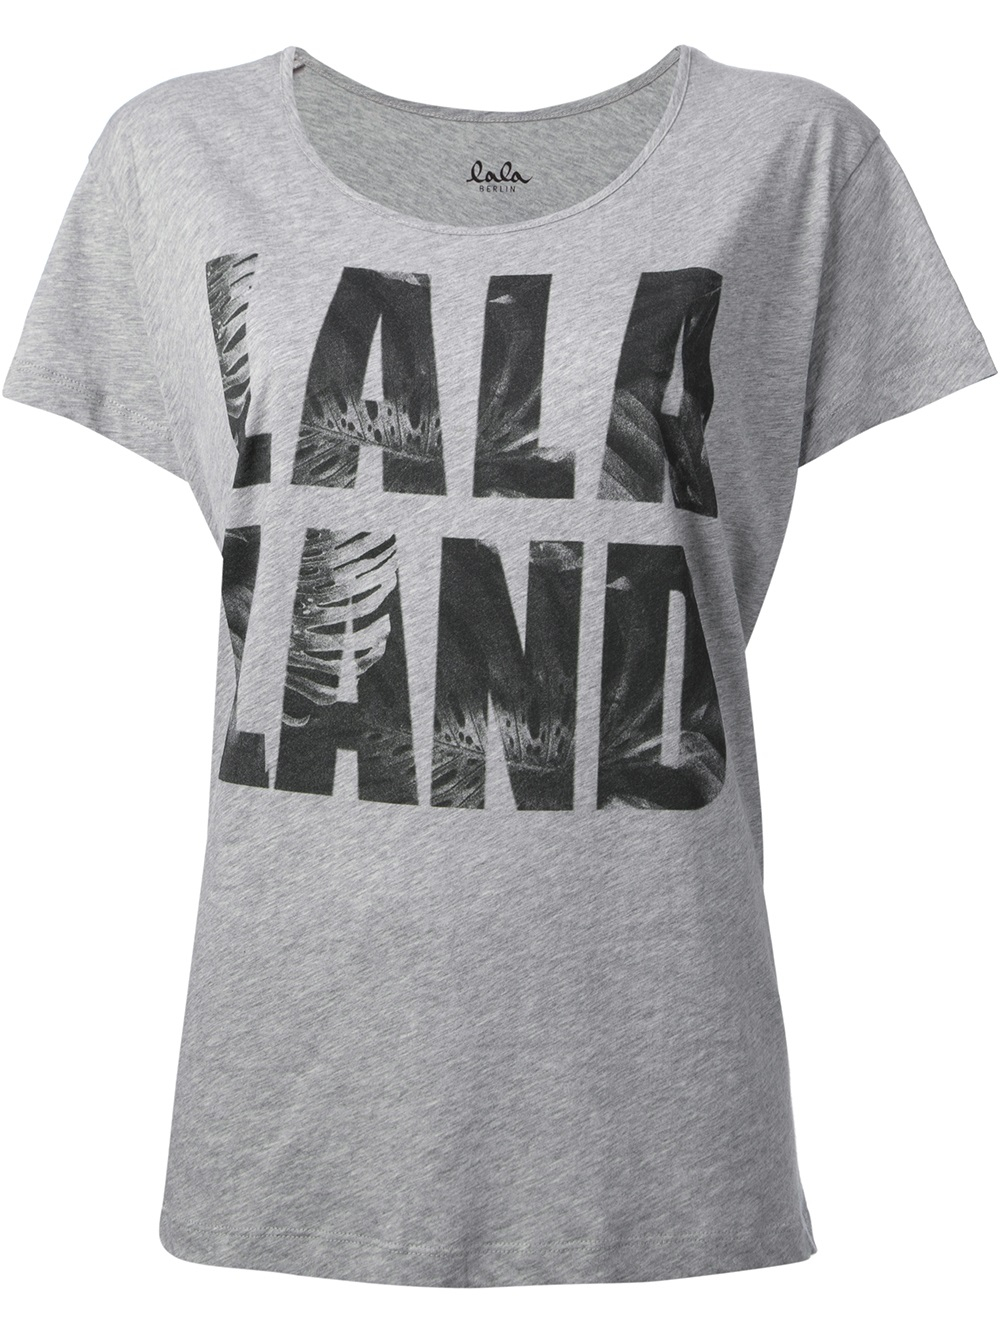 lala berlin lala land print tshirt in gray lyst. Black Bedroom Furniture Sets. Home Design Ideas